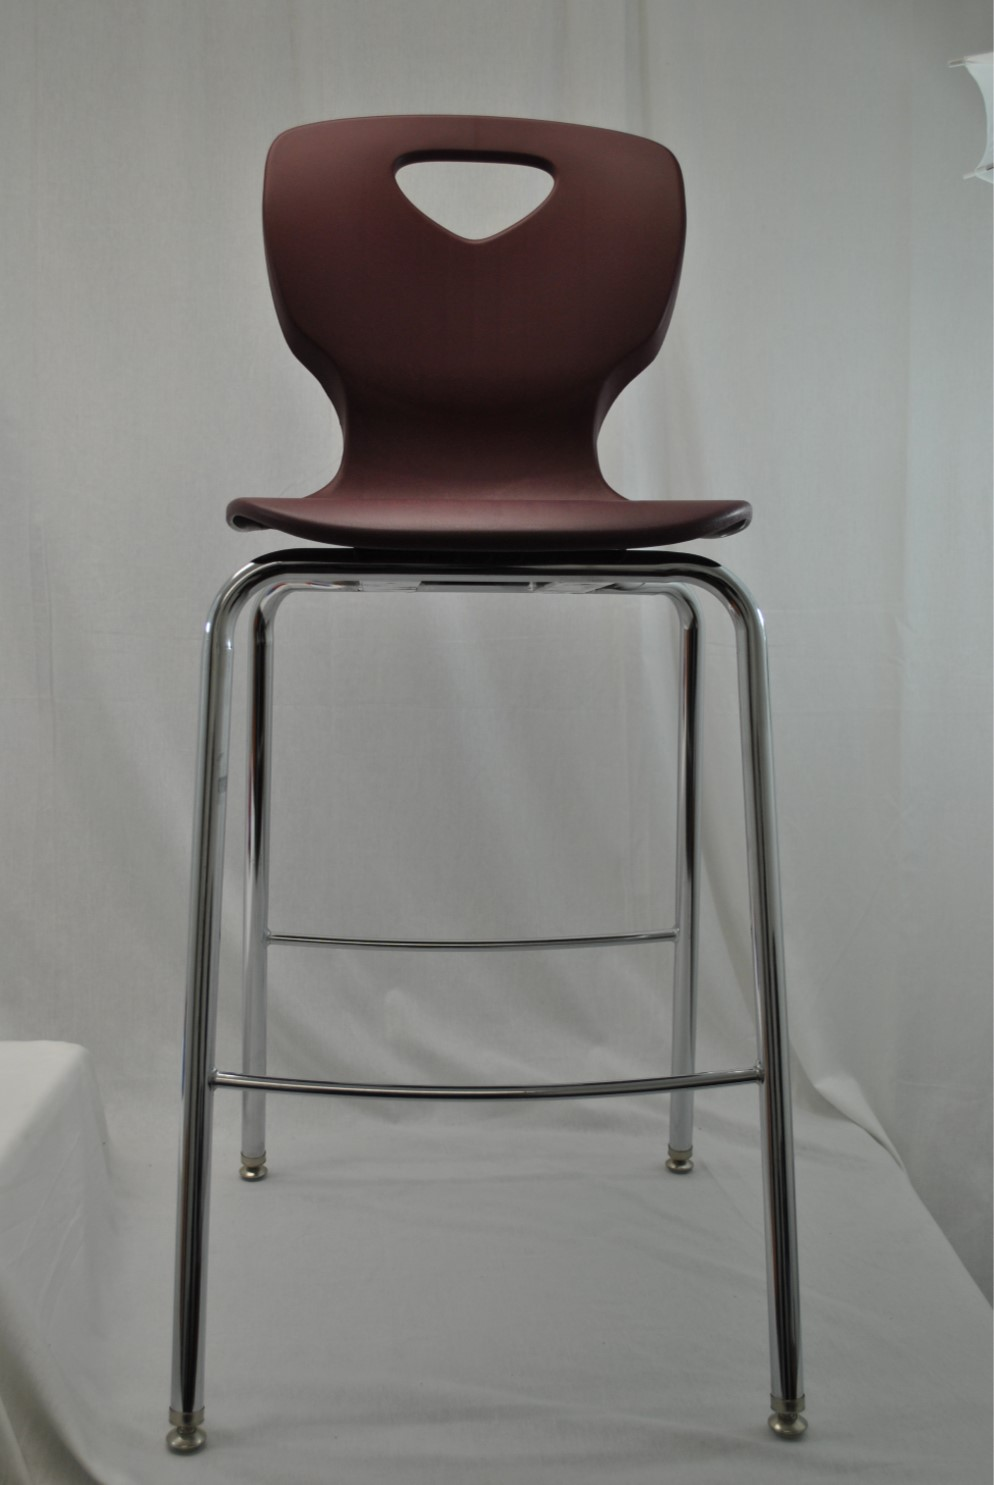 4 leg cafe chair.jpg